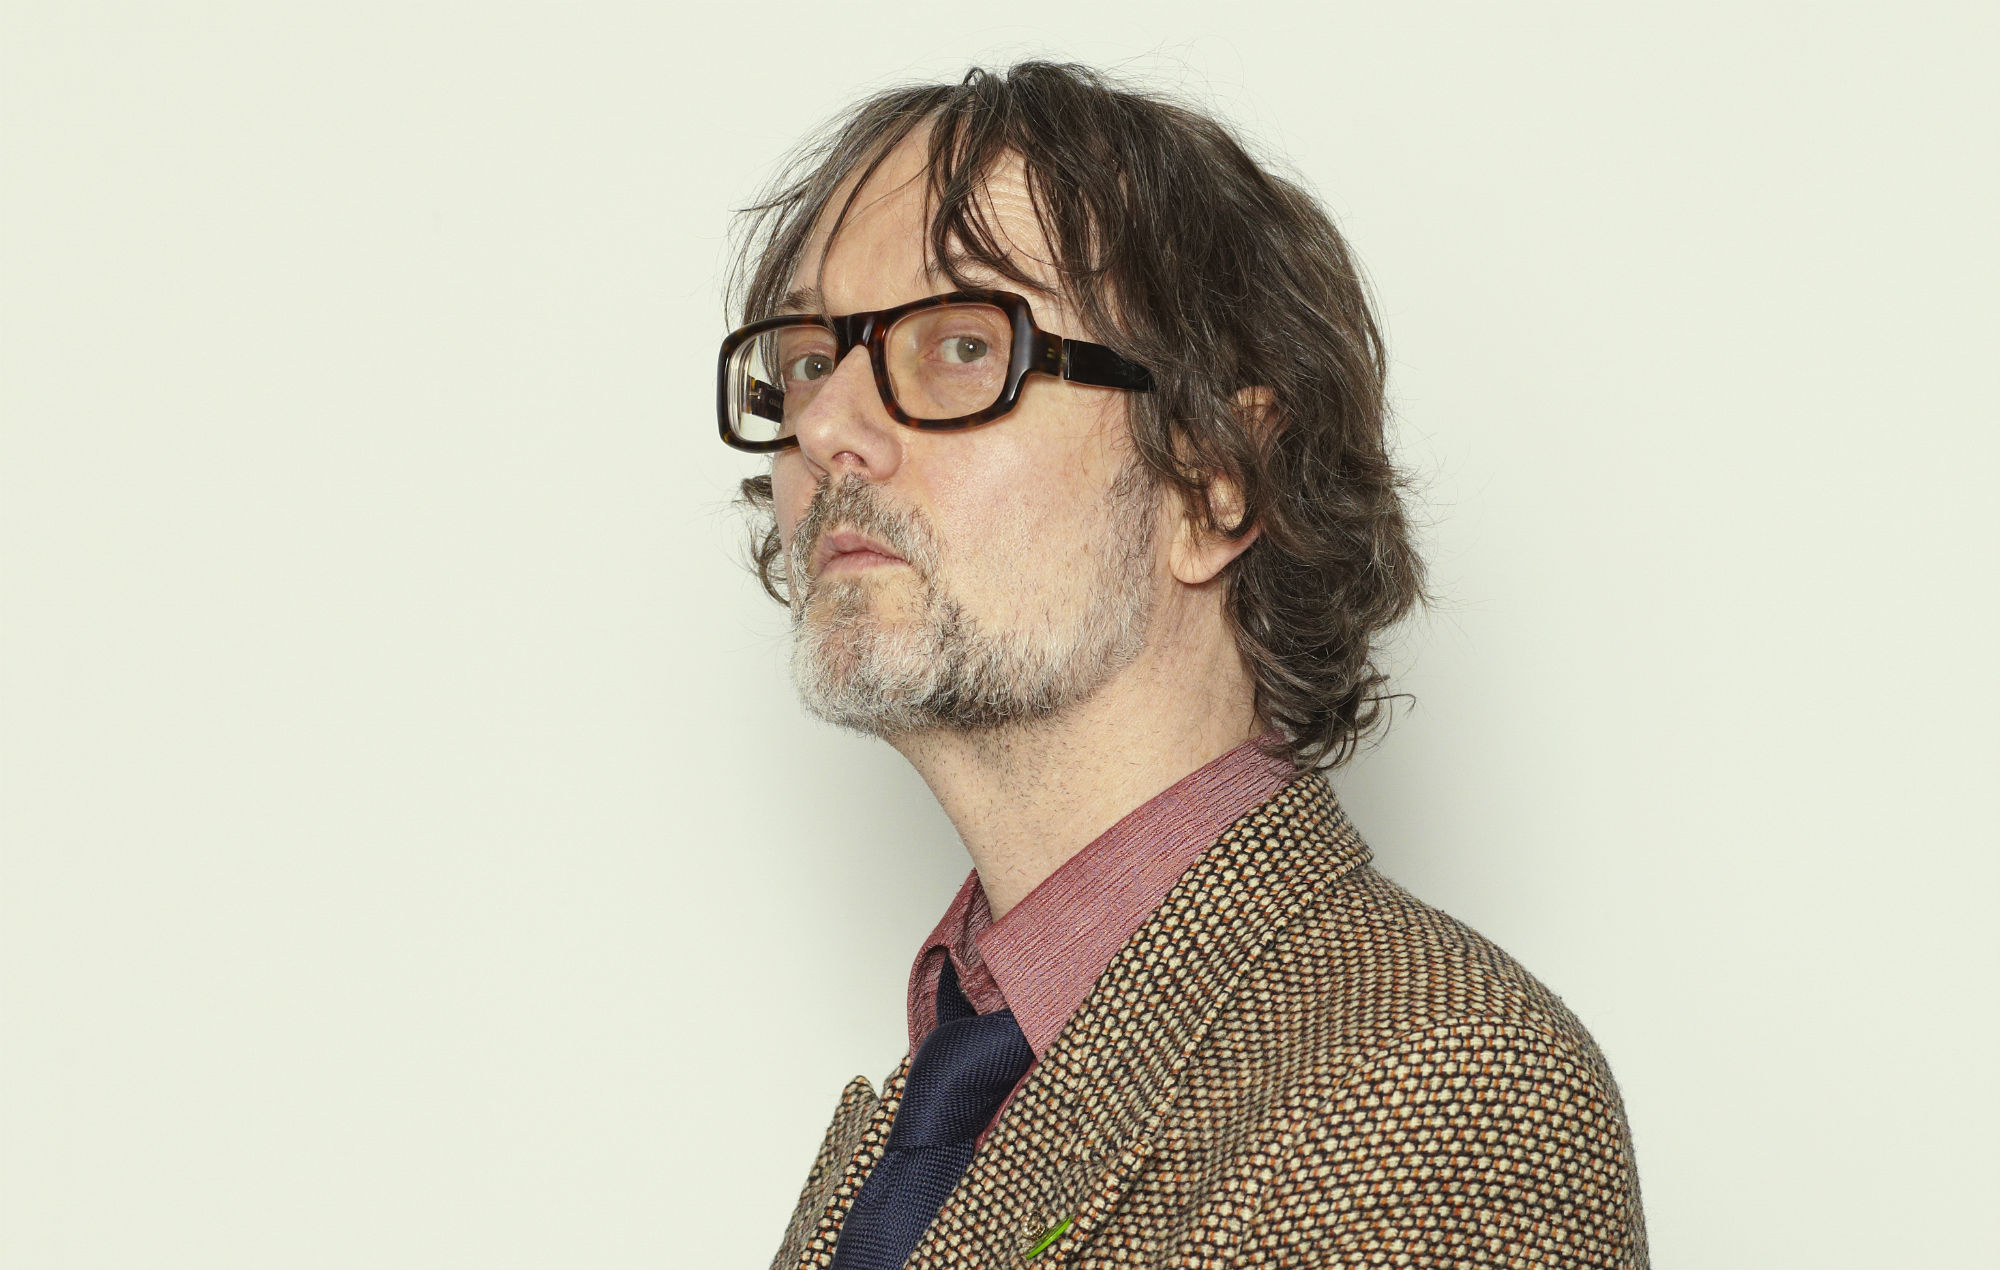 Jarvis Cocker has released a brand of tea. Wait – what?